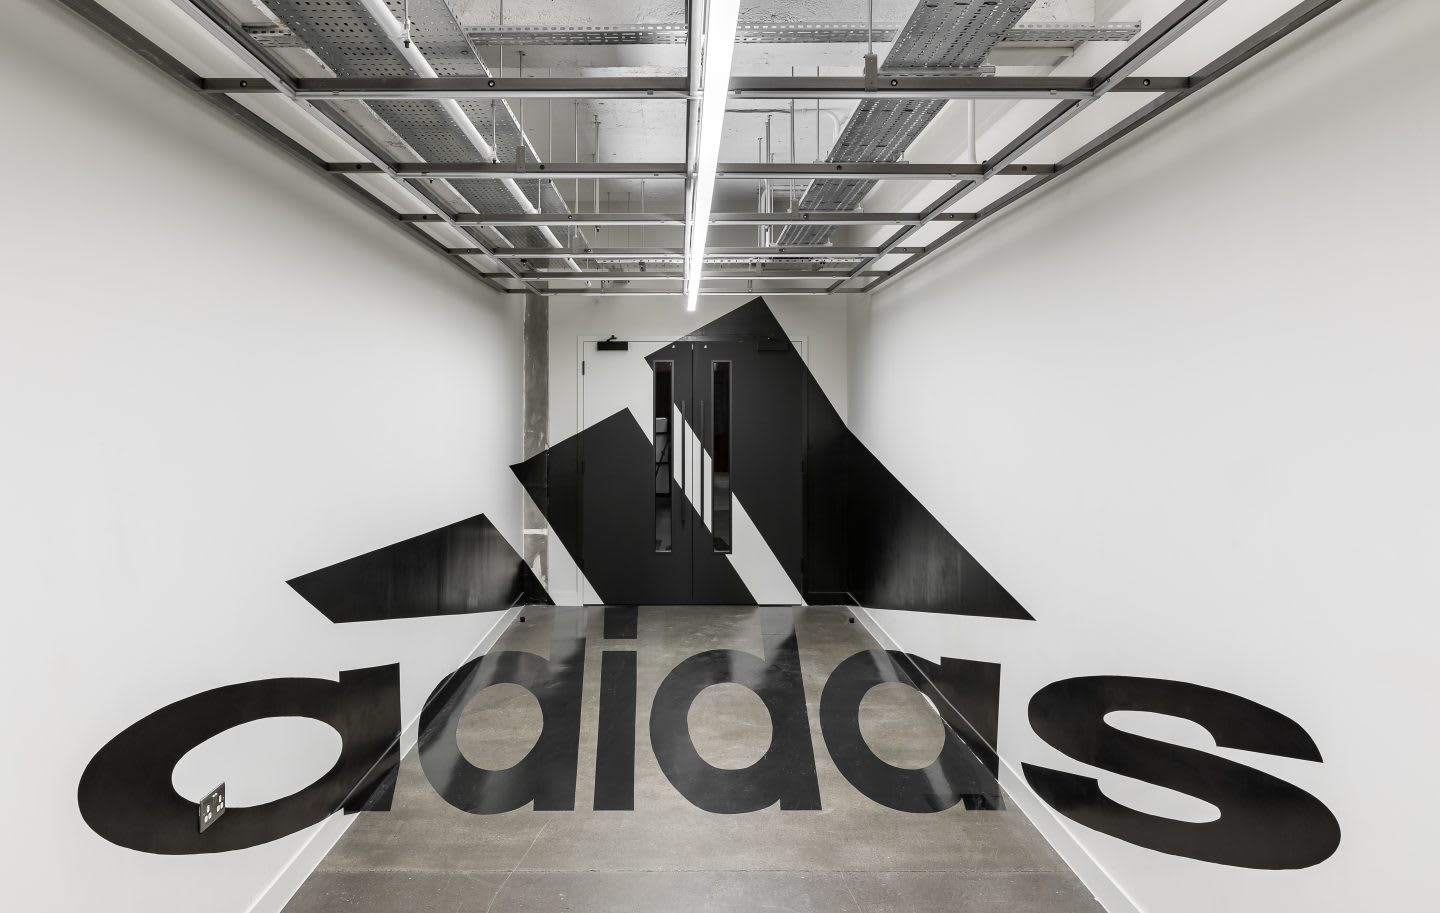 hallway at the adidas London office with an artistic illusion, workplaces, workplaces, adidas company culture collaboration, developing creativity, working in adidas